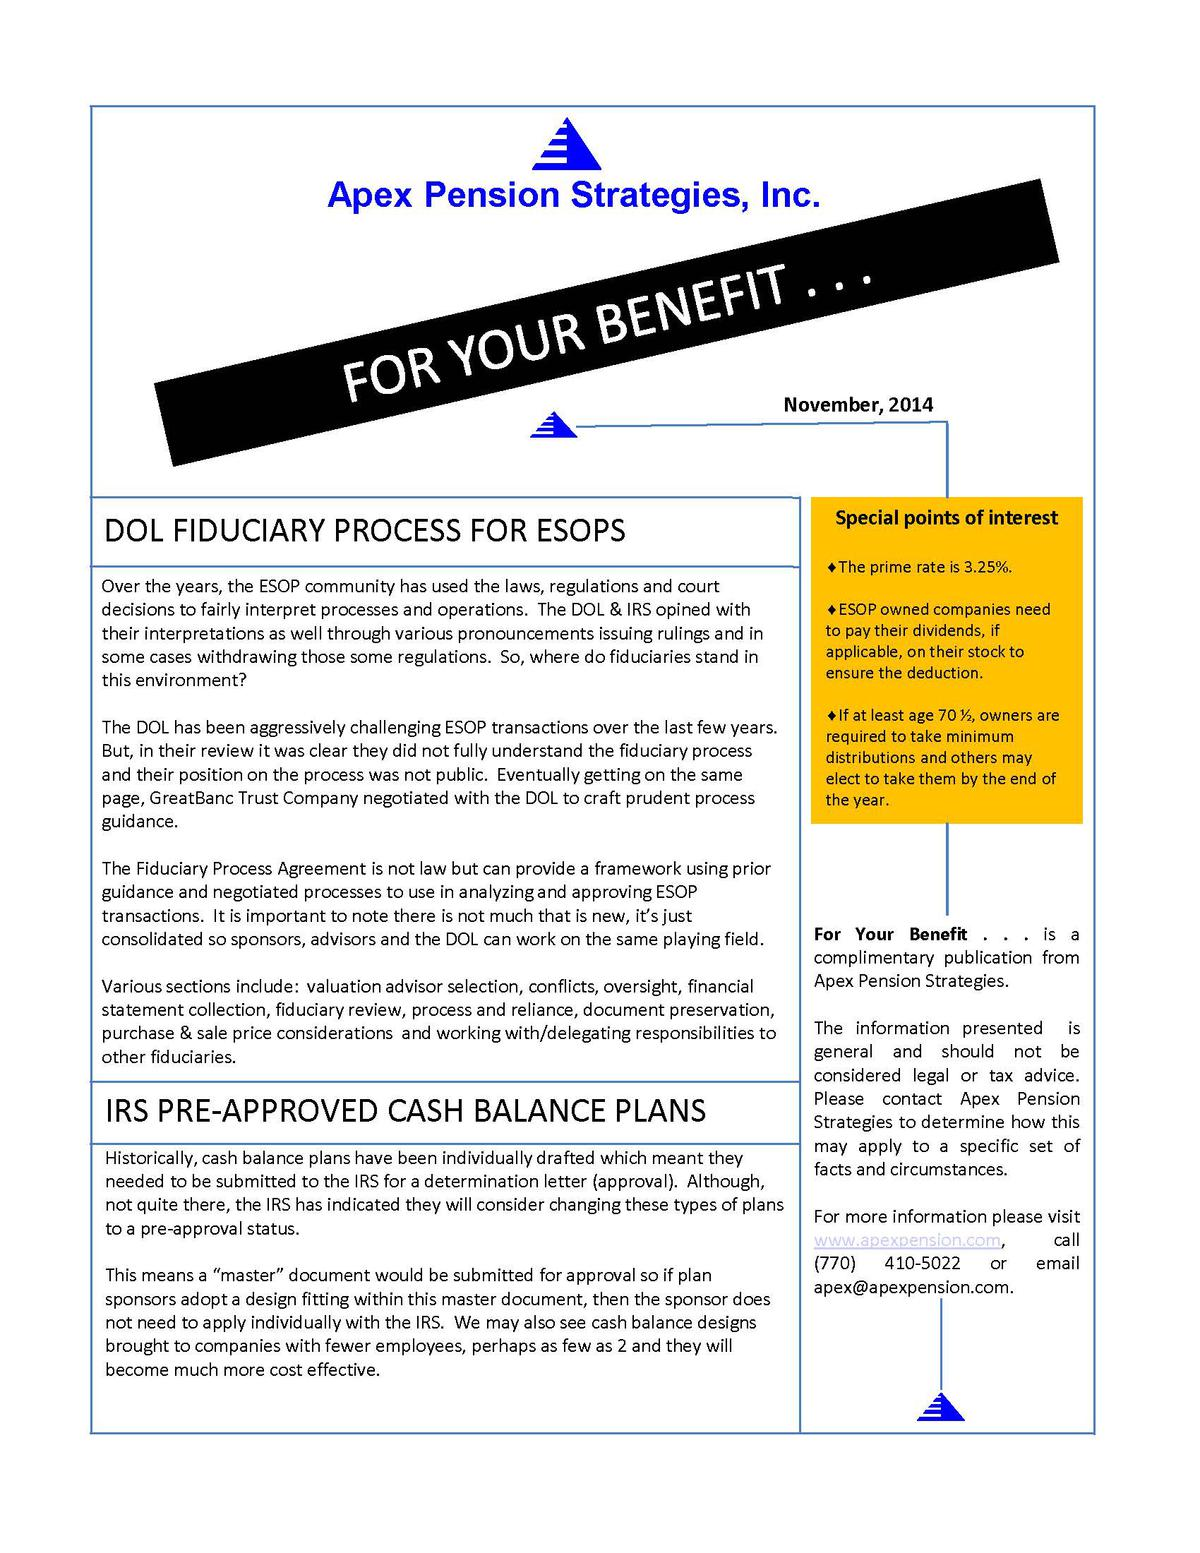 DOL Fiduciary Process for ESOPS